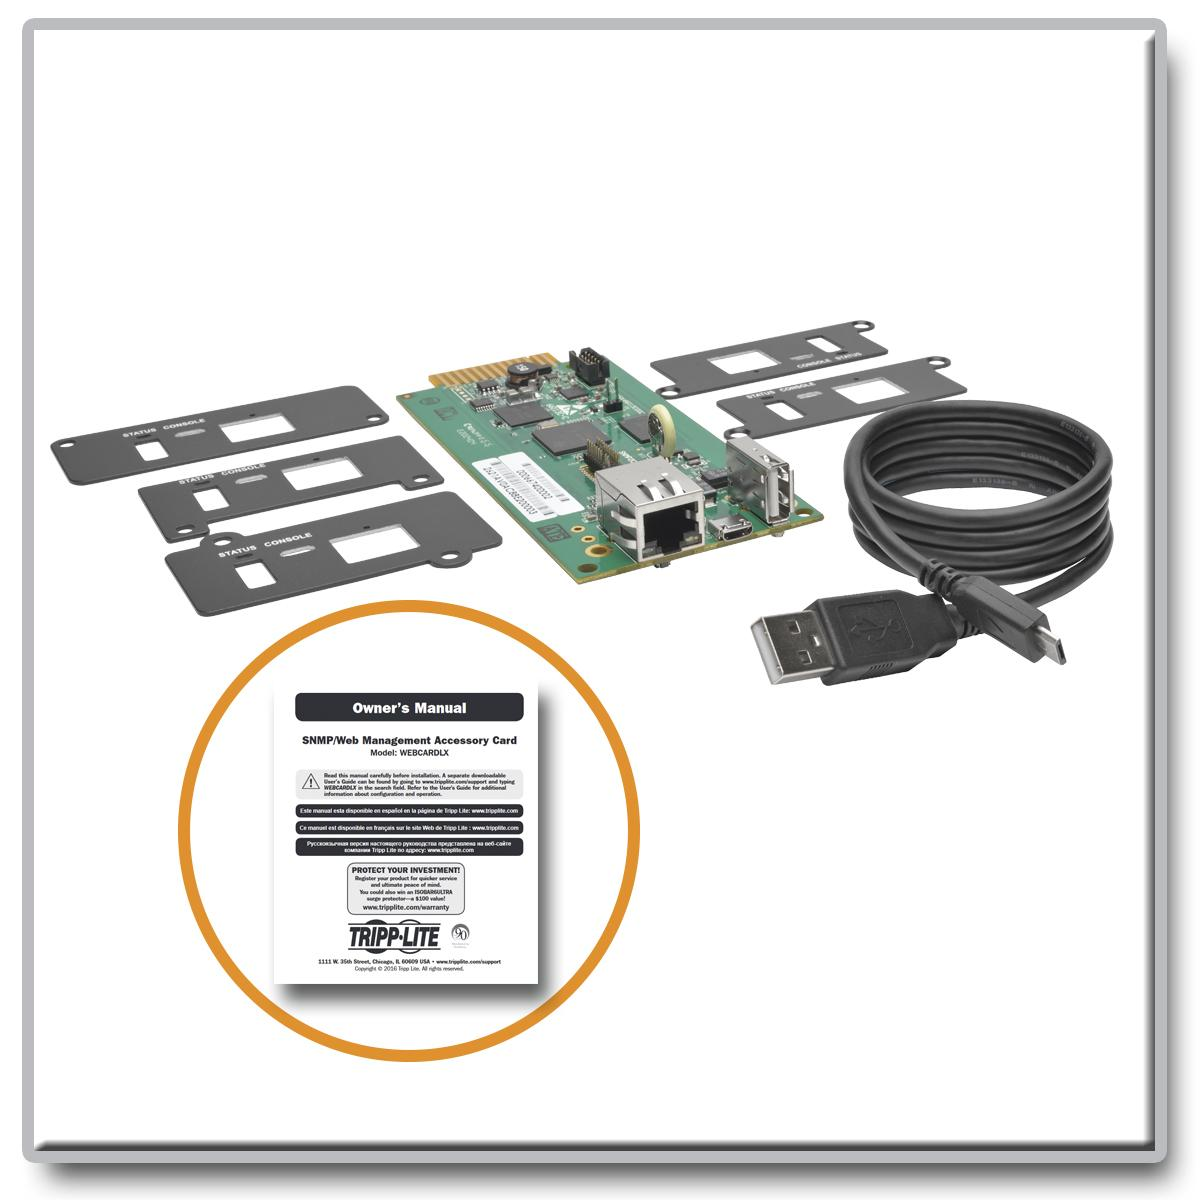 Tripp Lite UPS Web Management Accessory Card, Remote Monitoring, SNMP